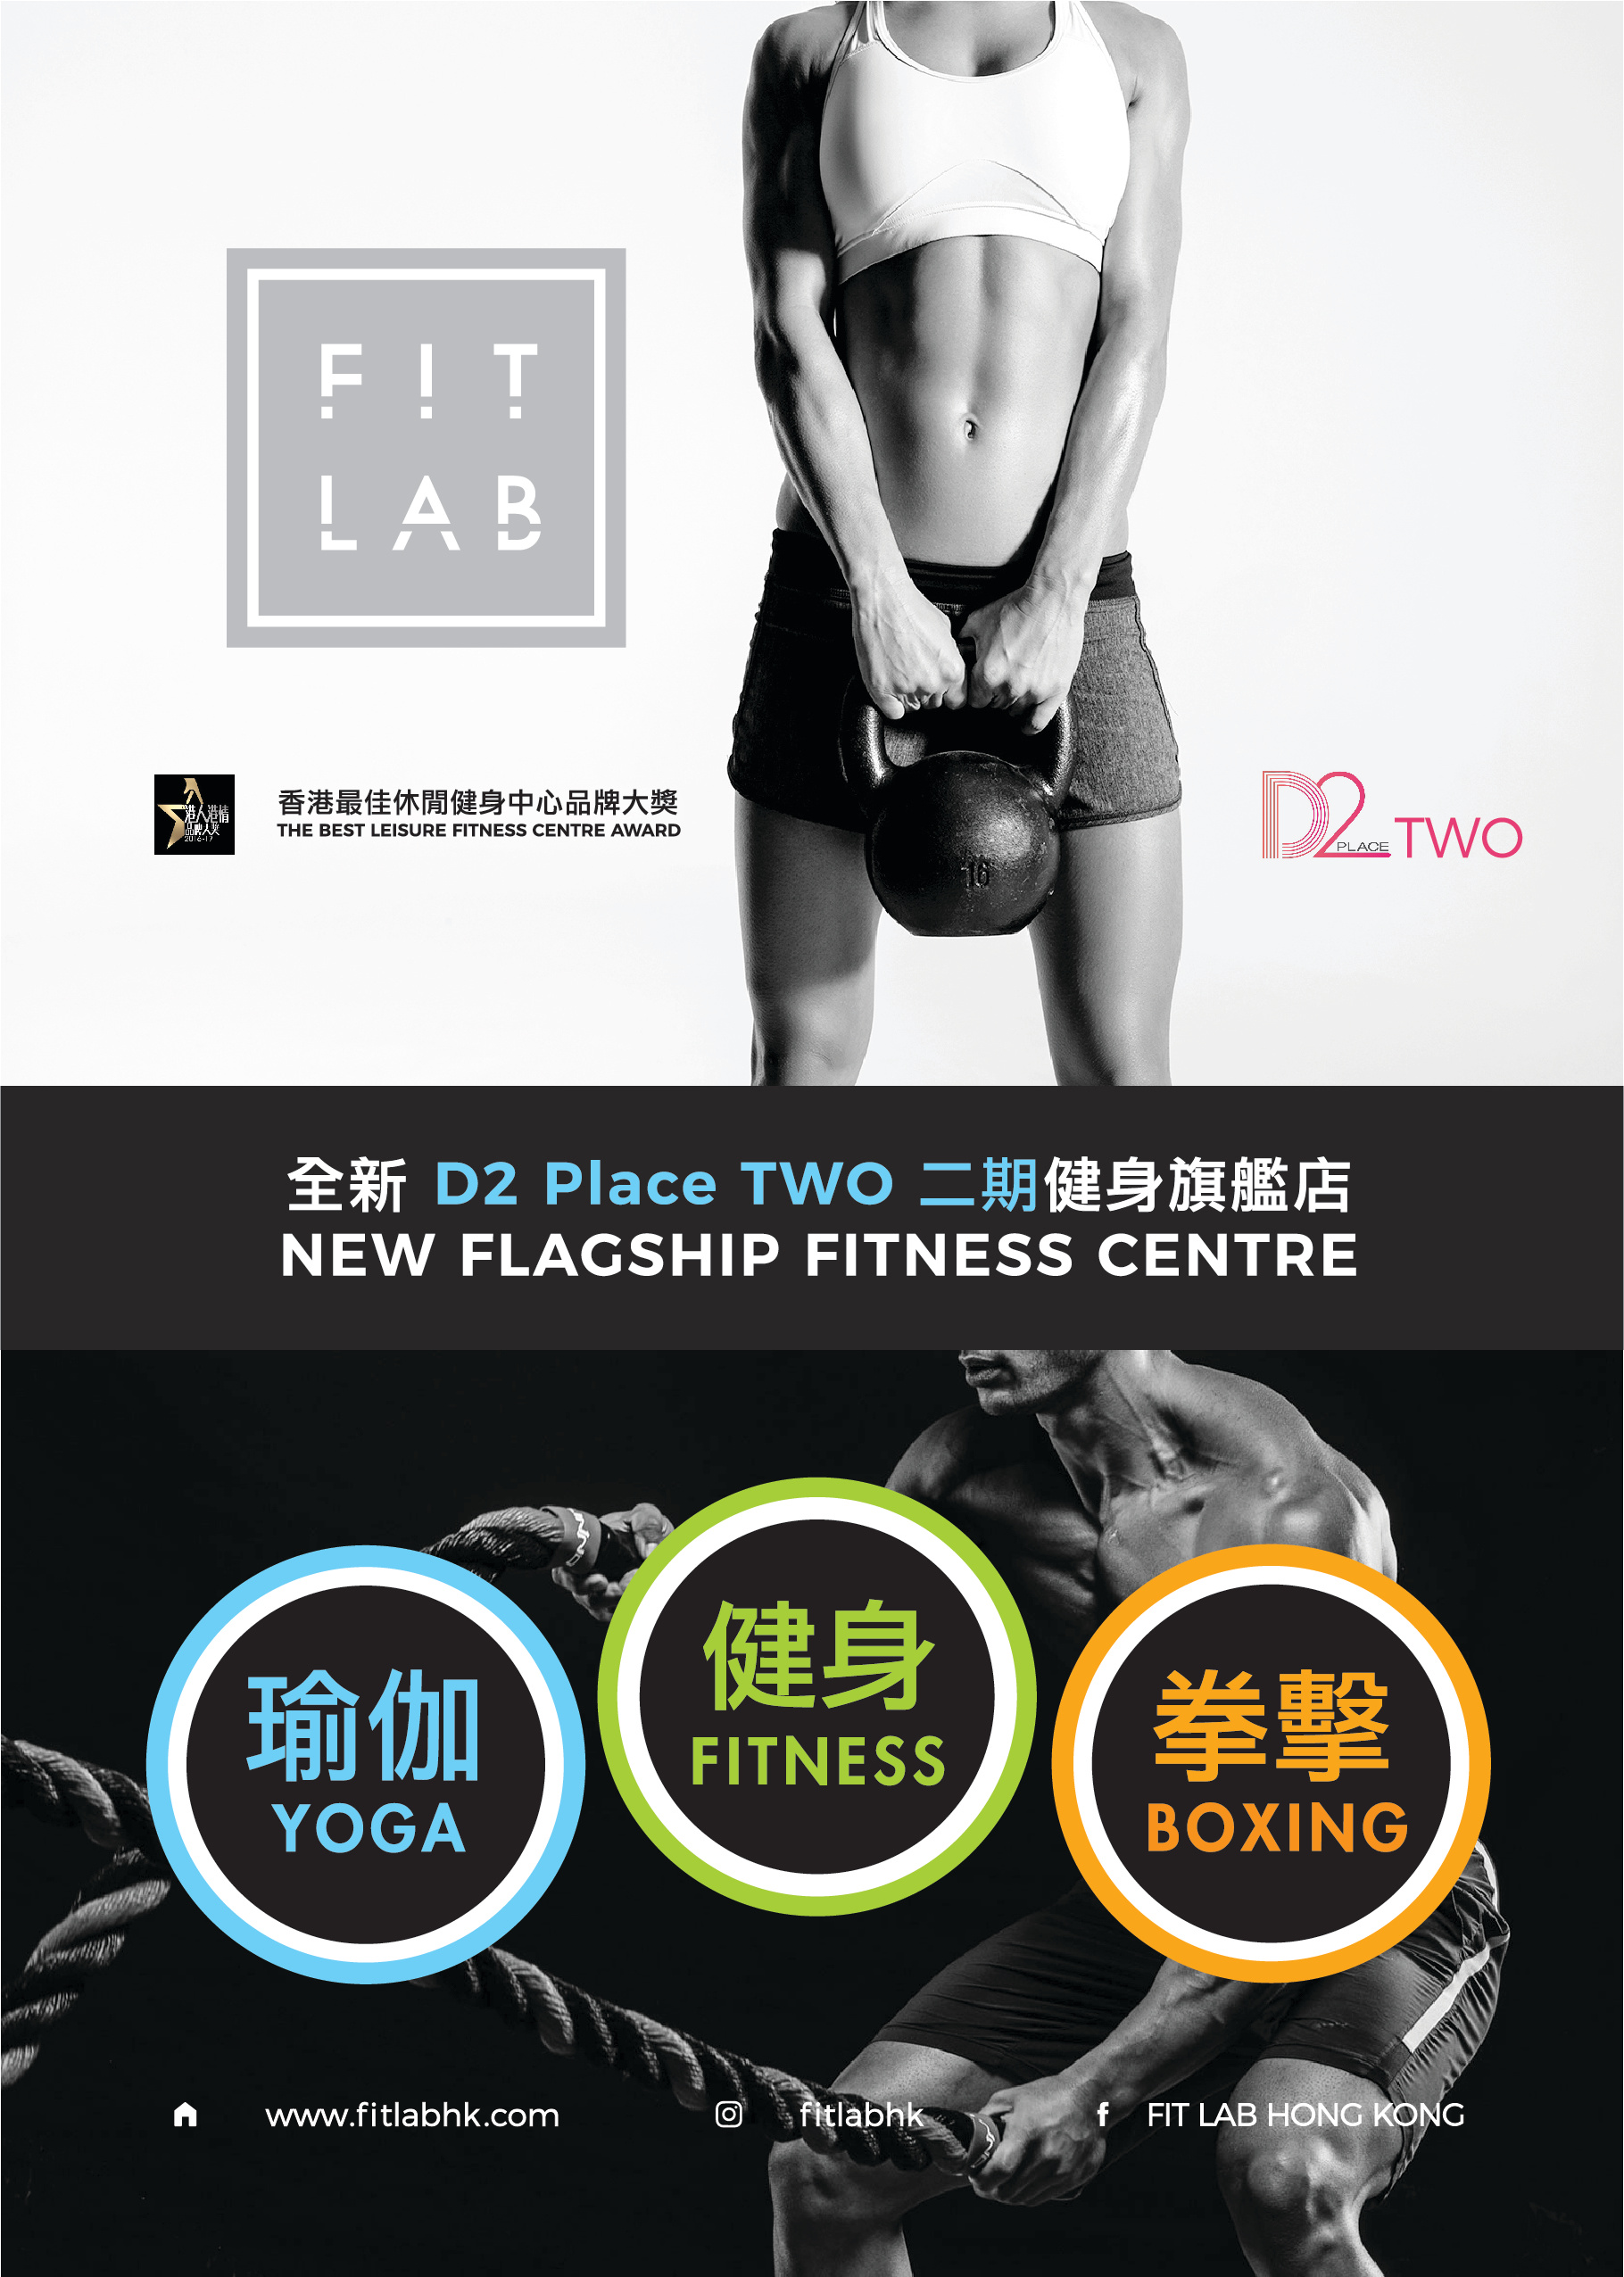 FIT LAB HONG KONG